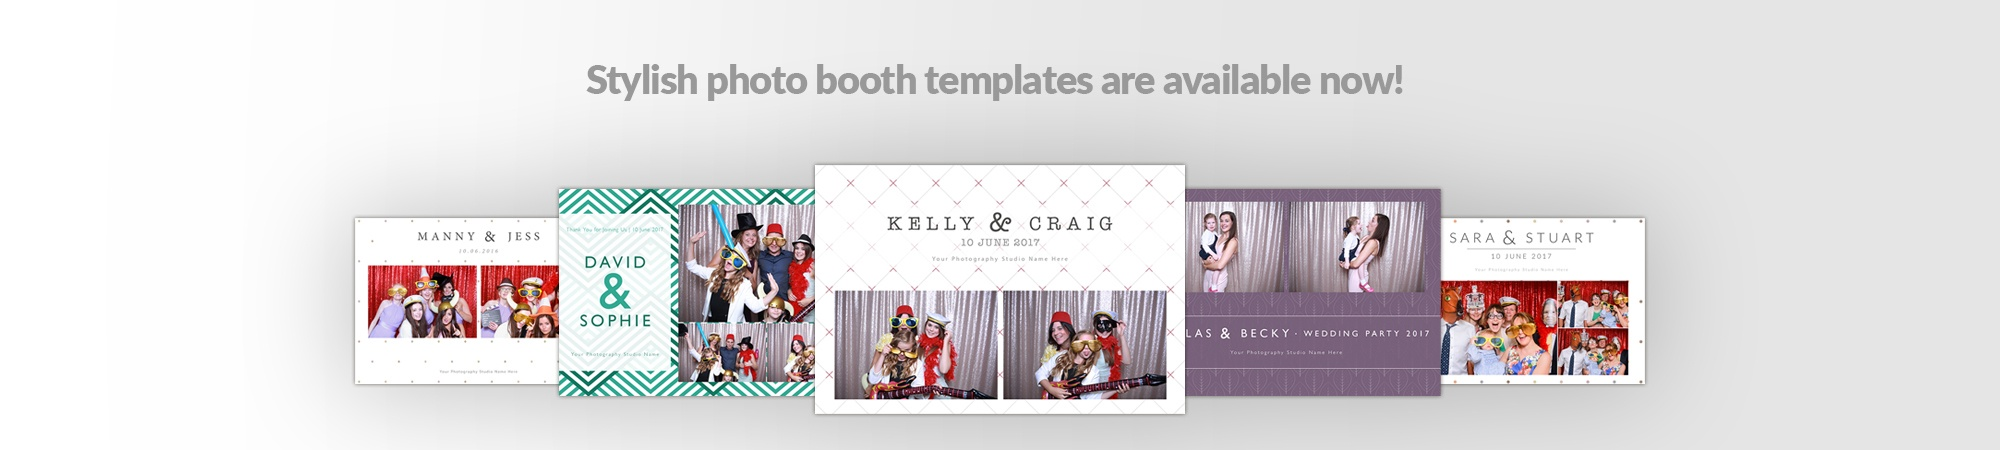 photo booth template click image to view available templates